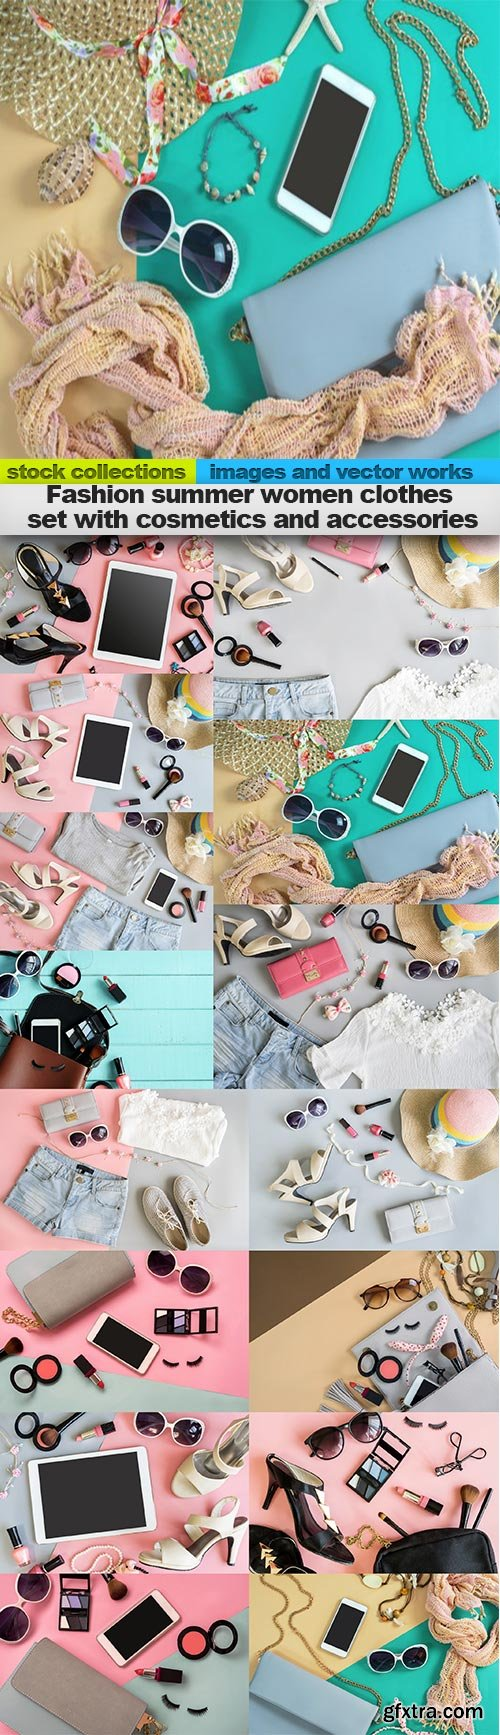 Fashion summer women clothes set with cosmetics and accessories, 15 x UHQ JPEG